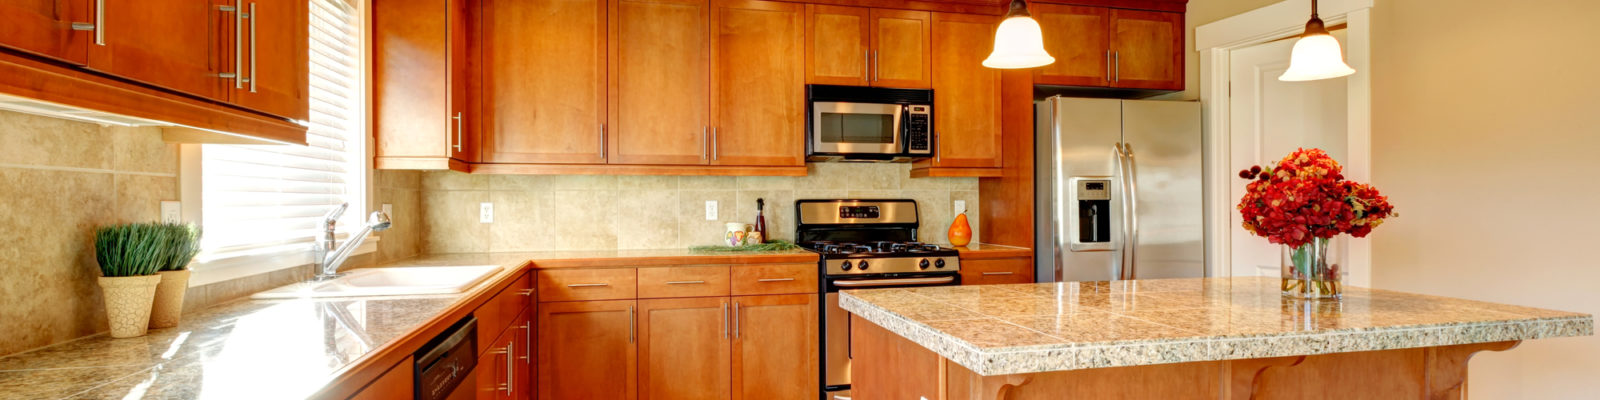 Kitchen Remodeling Company Southern MD